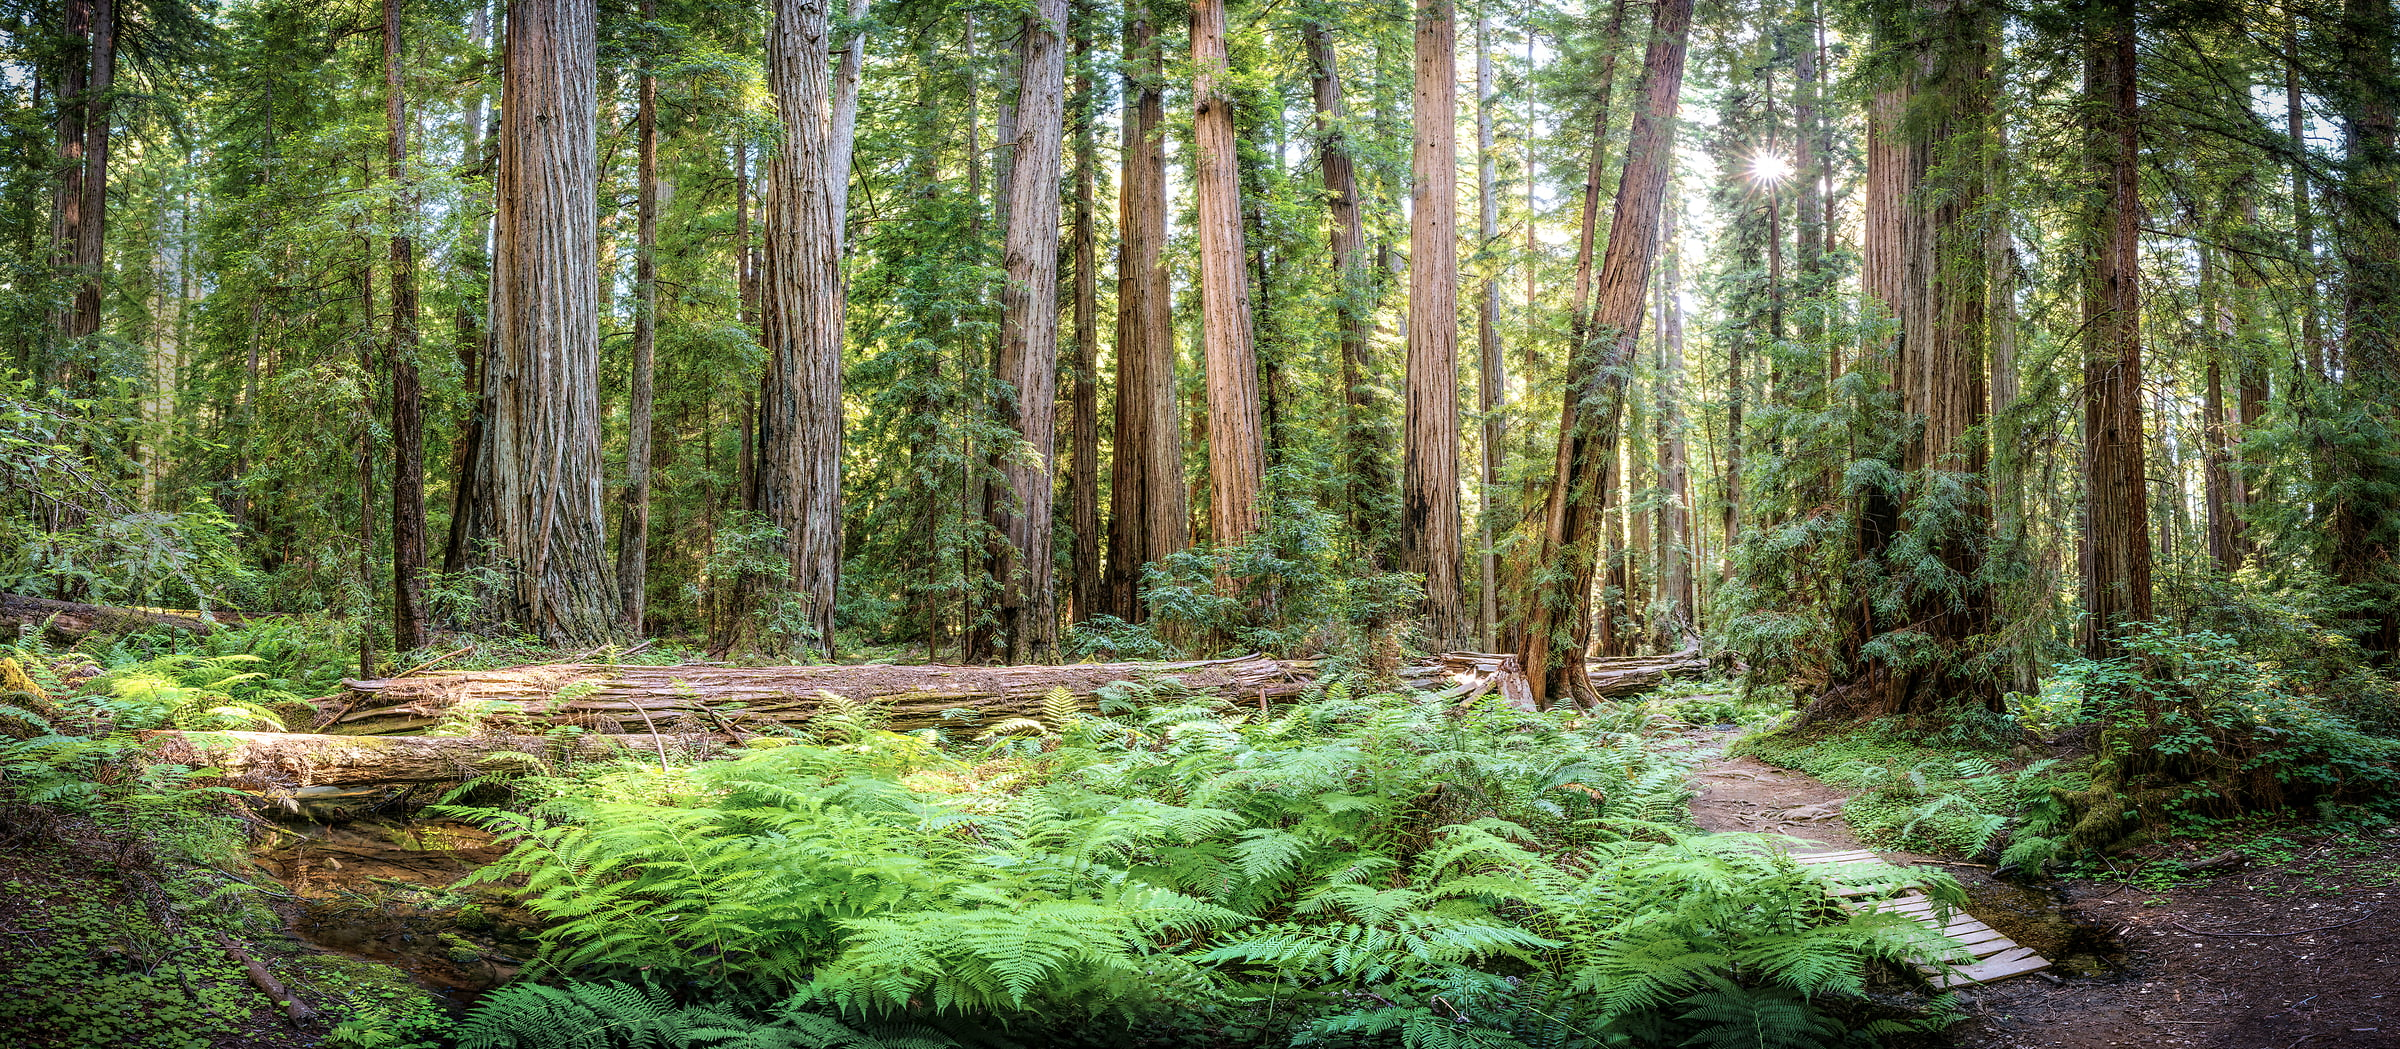 536 megapixels! A very high resolution, large-format VAST photo of a redwood forest with ferns and a creek; fine art nature photo created by Justin Katz in Montgomery Woods State Reserve, California